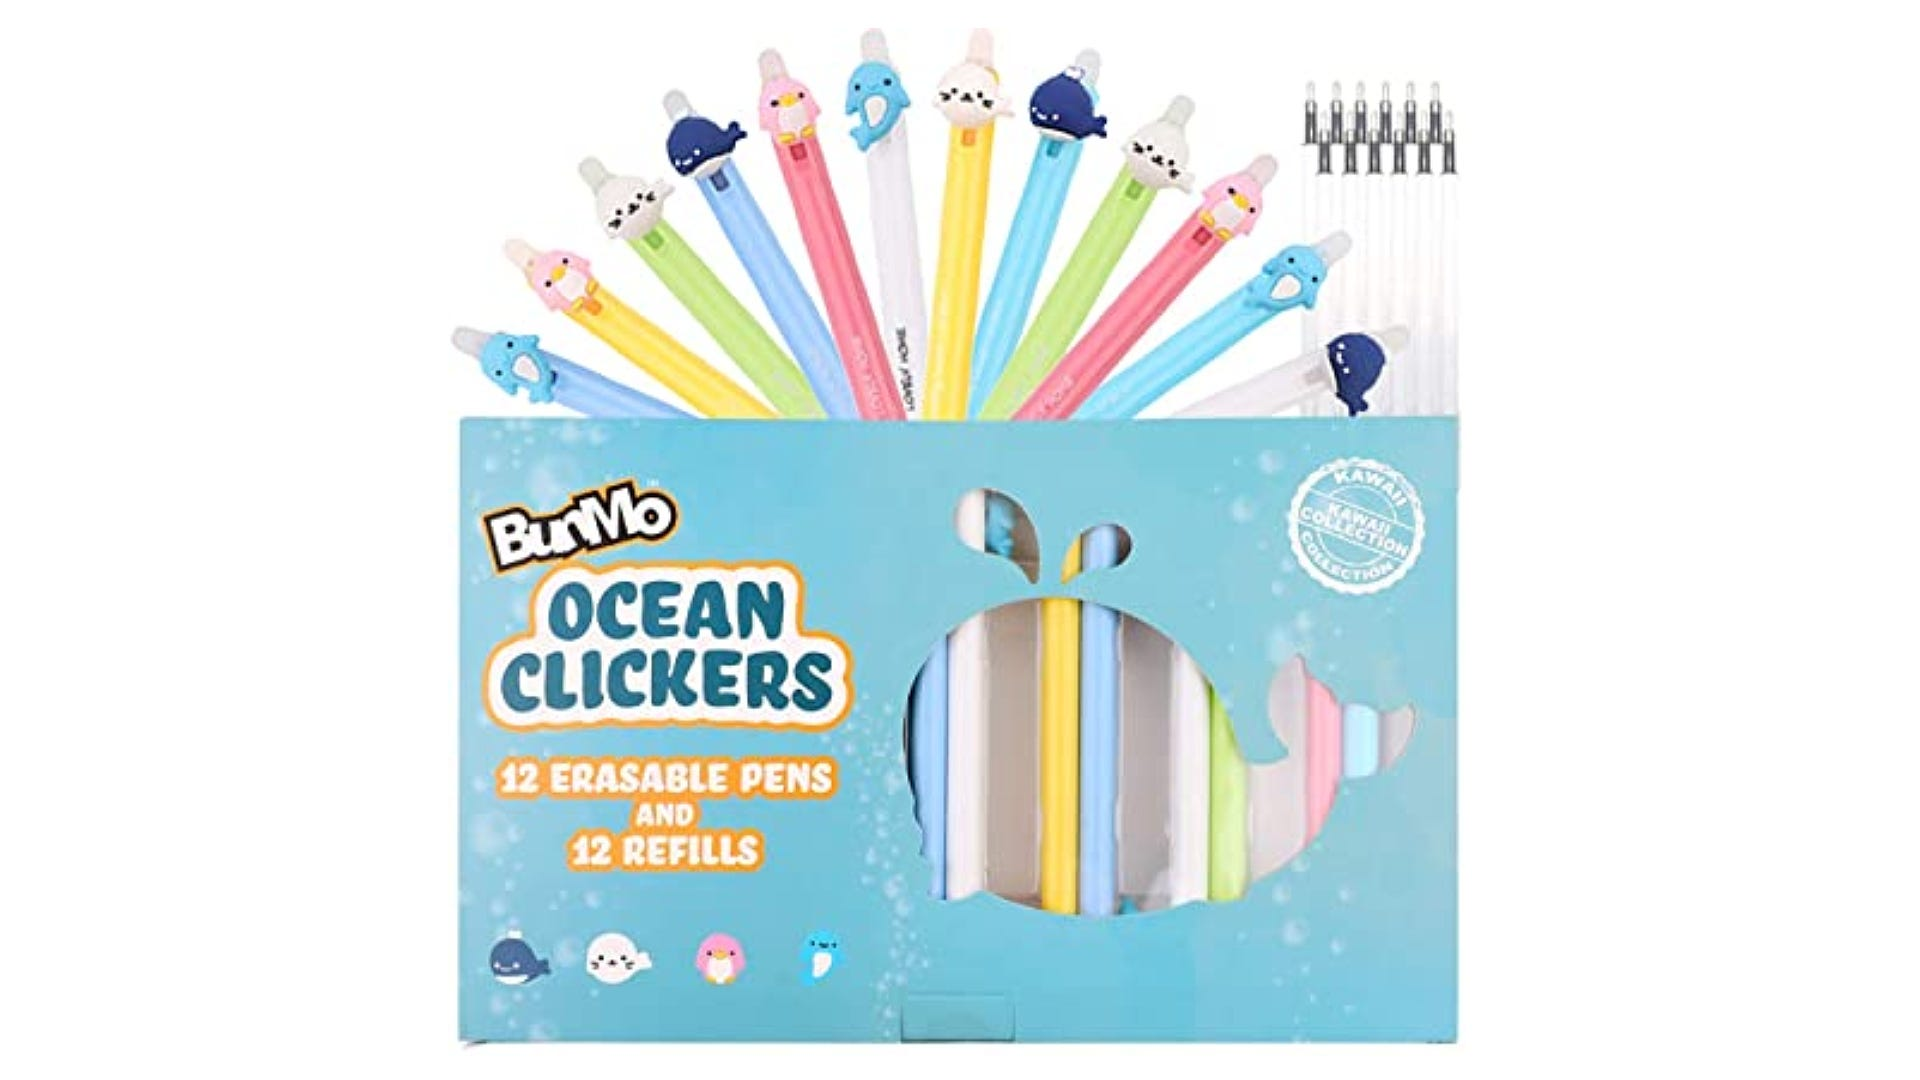 Baby ocean animal-themed erasable pens in a light blue package.